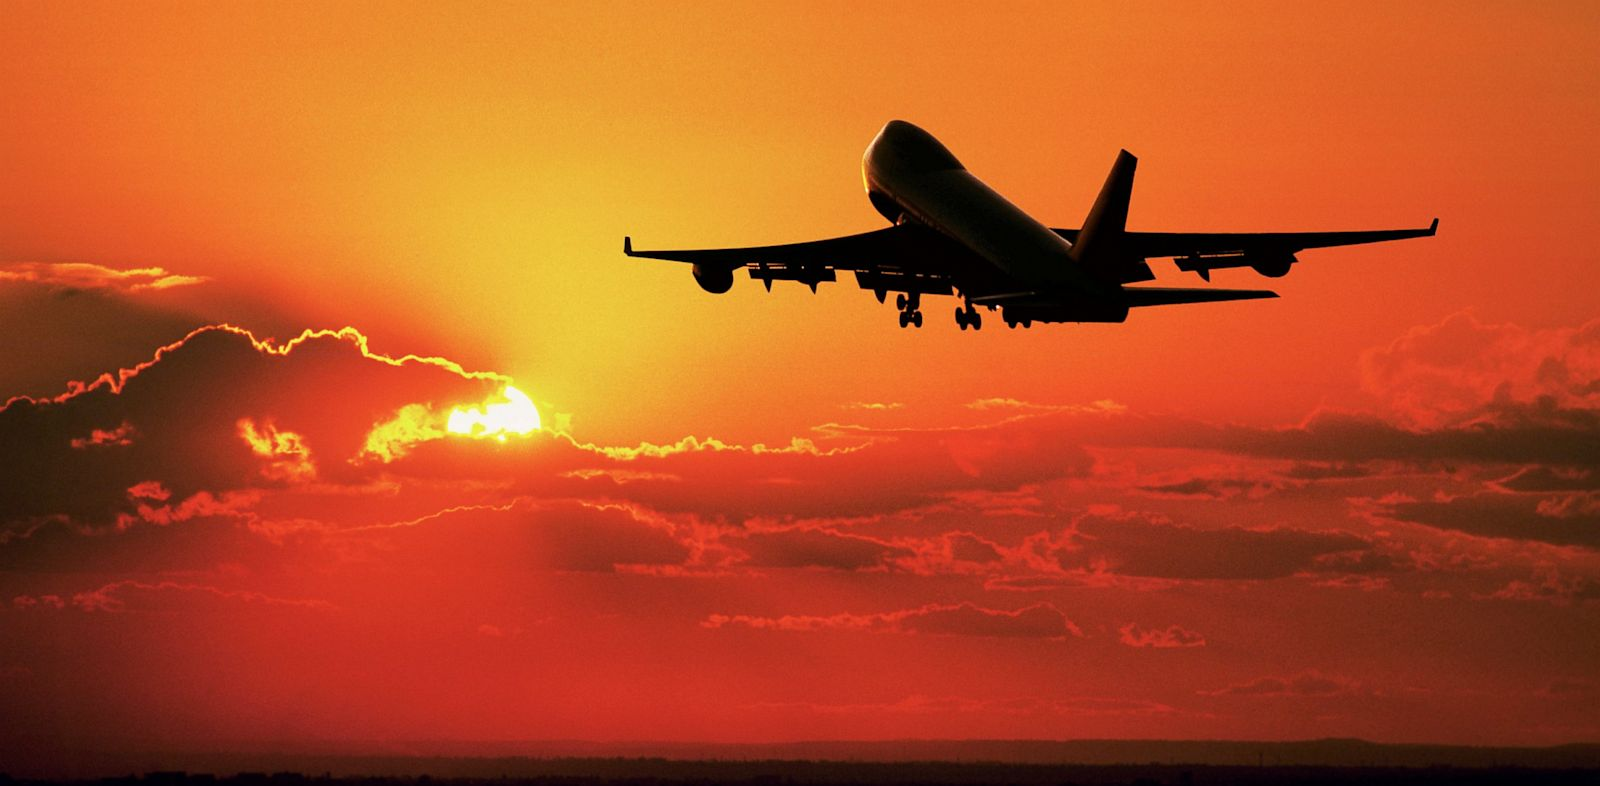 PHOTO: Airliner flying at sunset